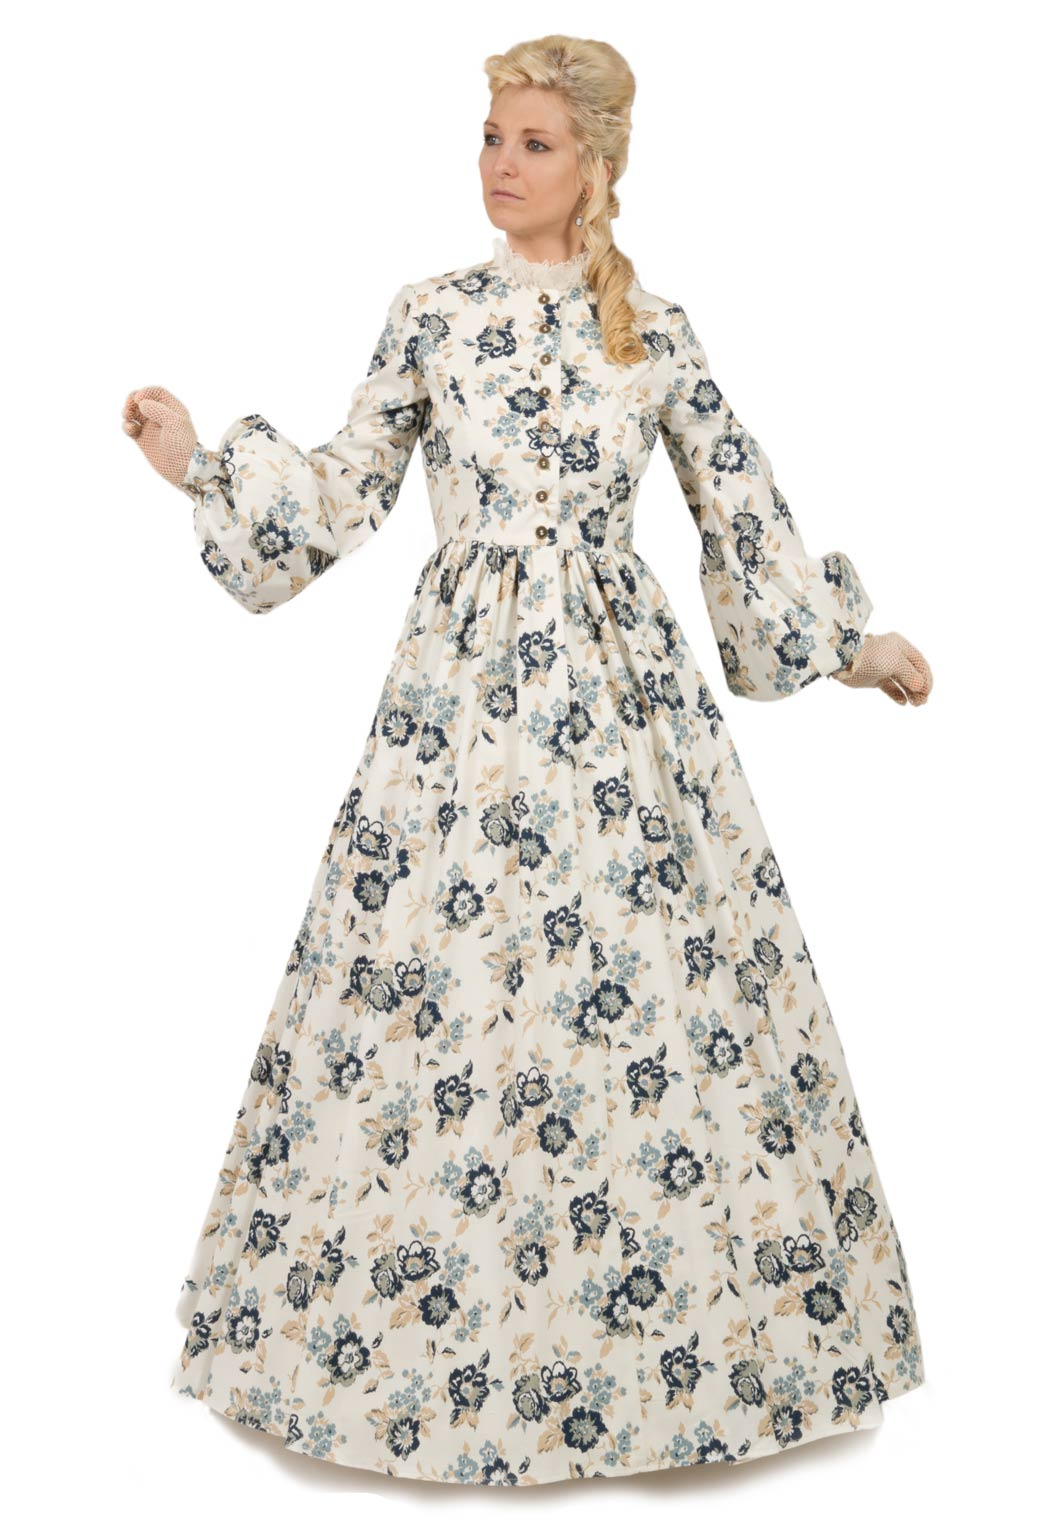 ac196a7db978 Print Dresses from Recollections (Page 1 of 3)